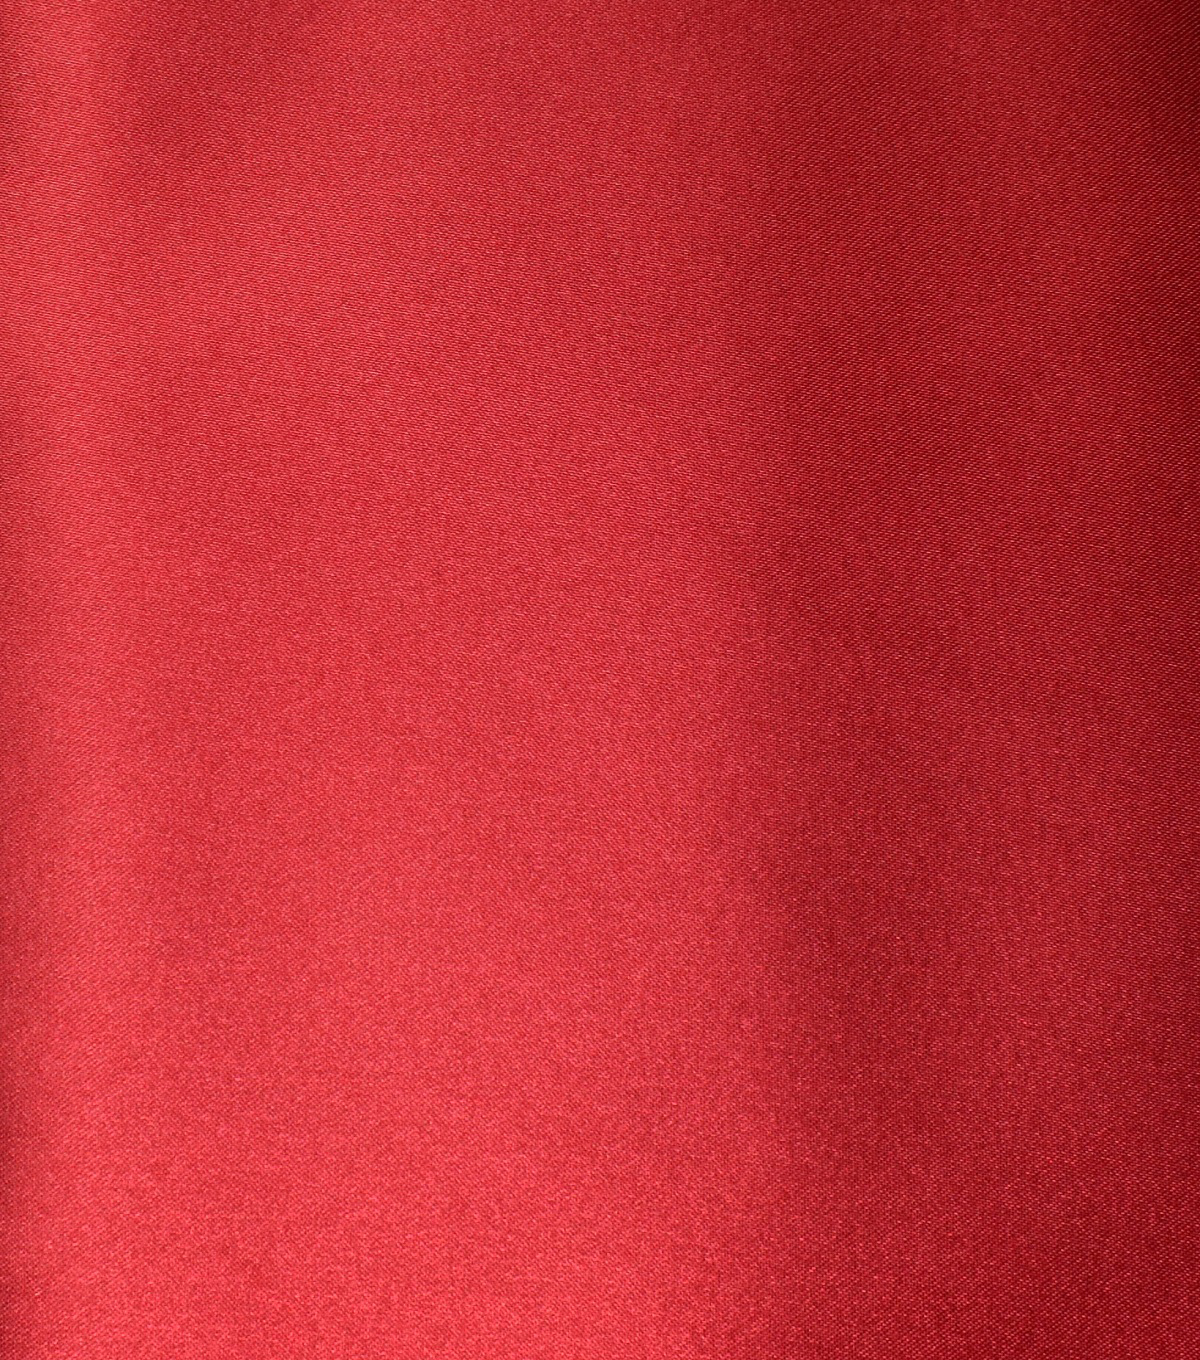 Casa Collection Shiny Satin Fabric, Tango Red